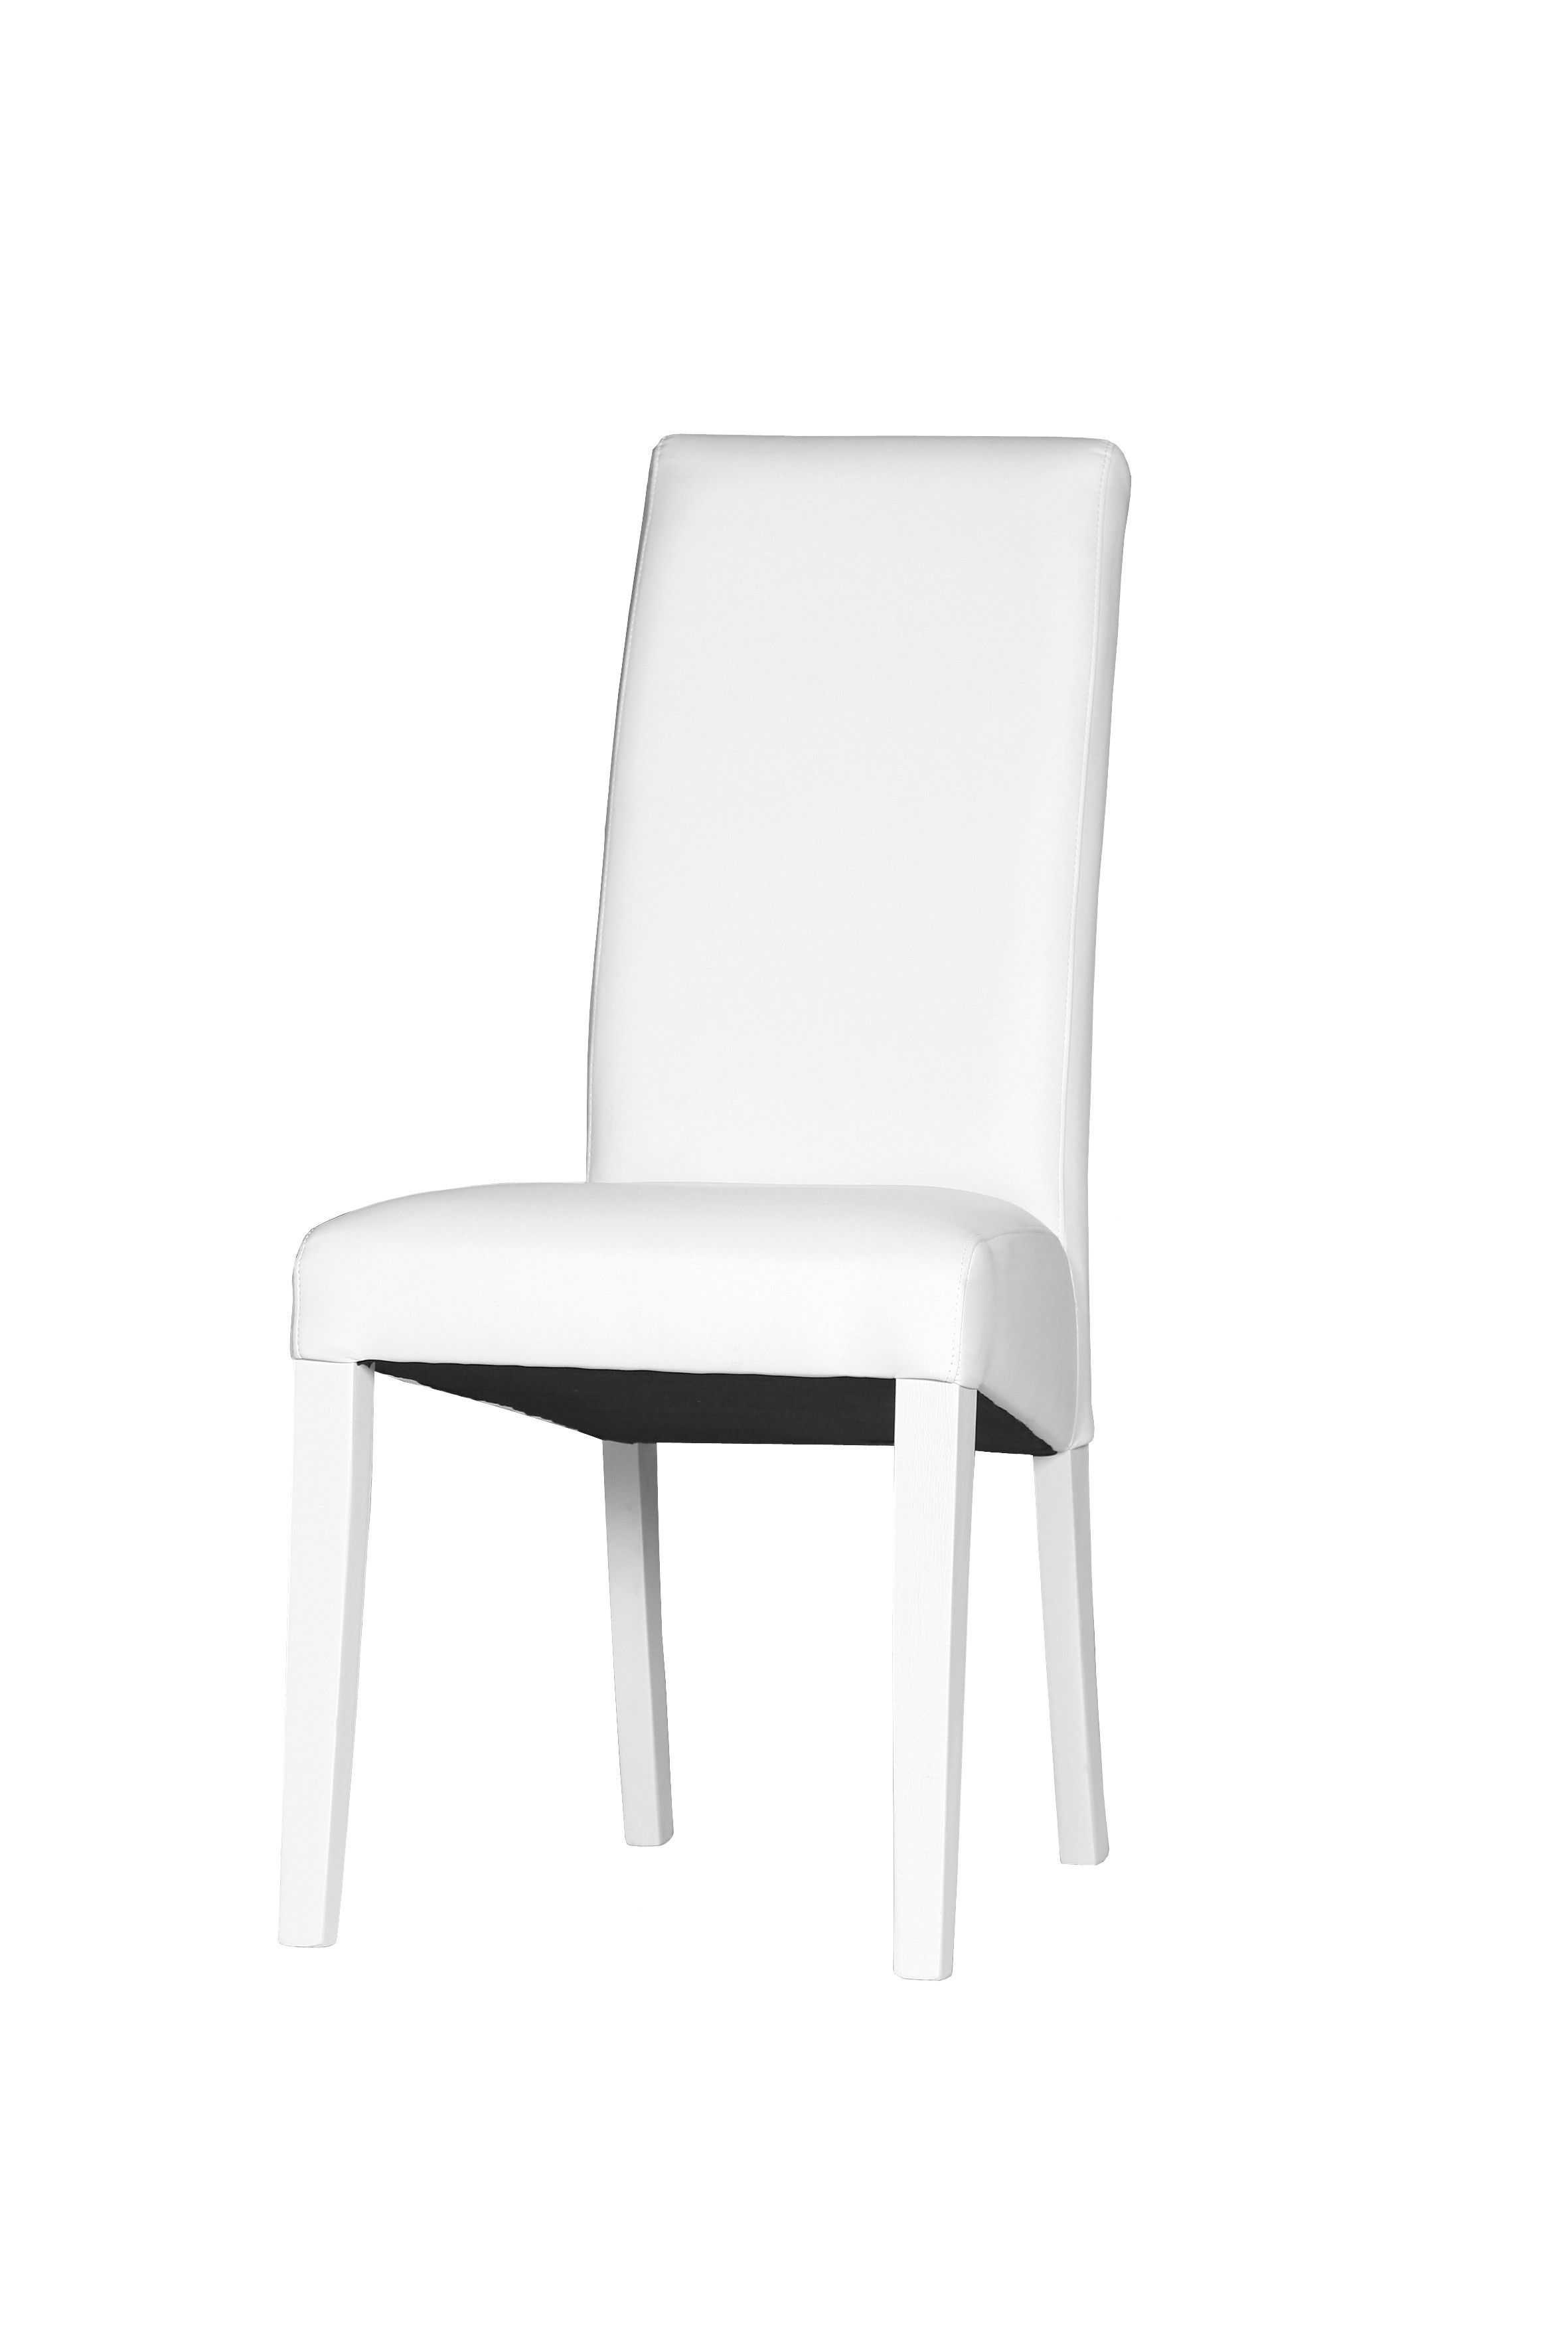 inspirant chaise blanche salle a manger